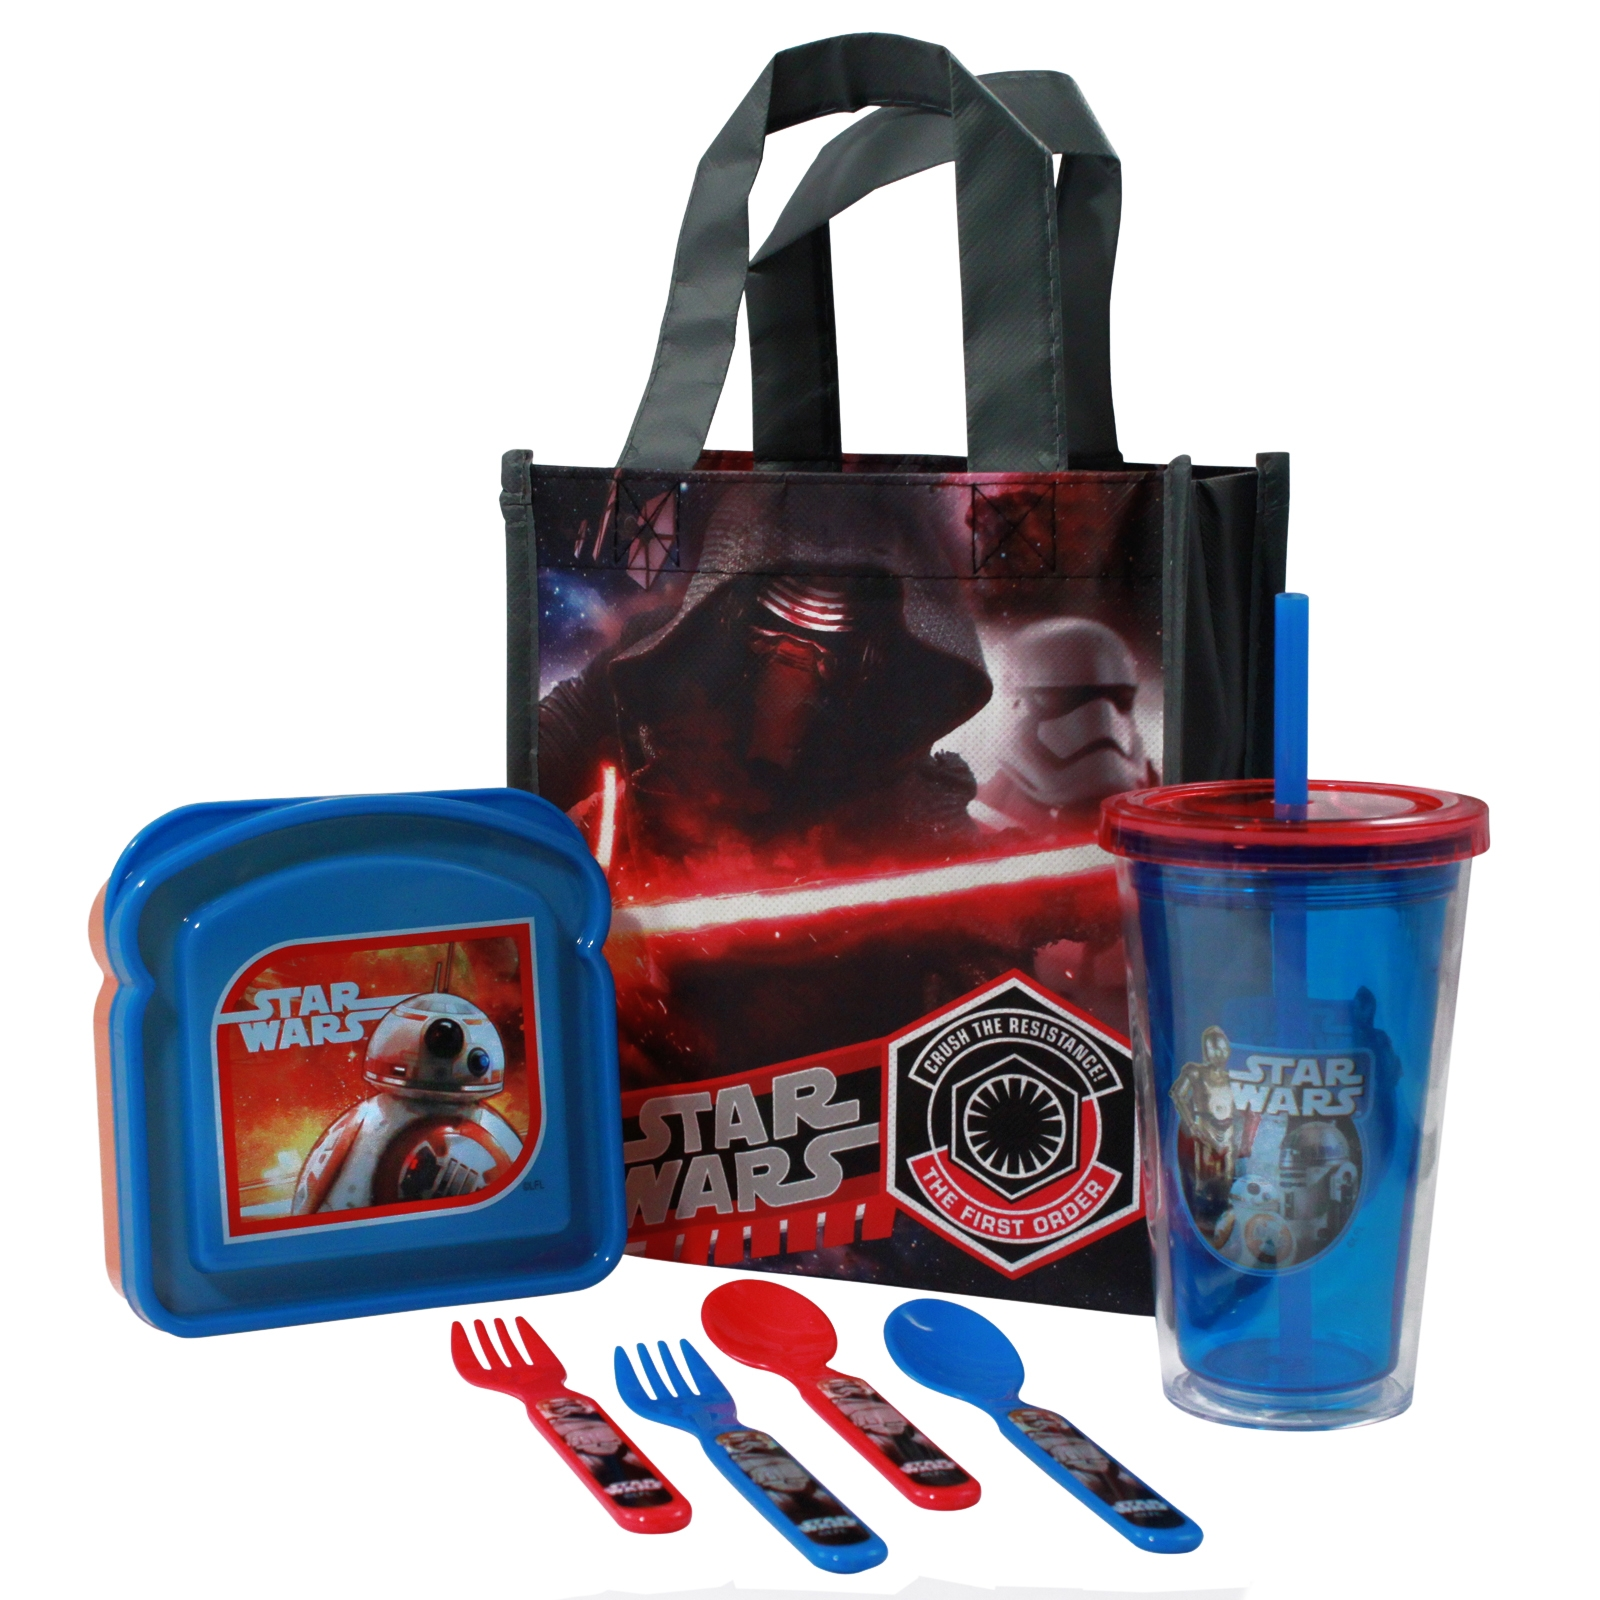 Disney Star Wars The Force Awakens Lunch Bundle w/ Kylo Ren and Stormtrooper